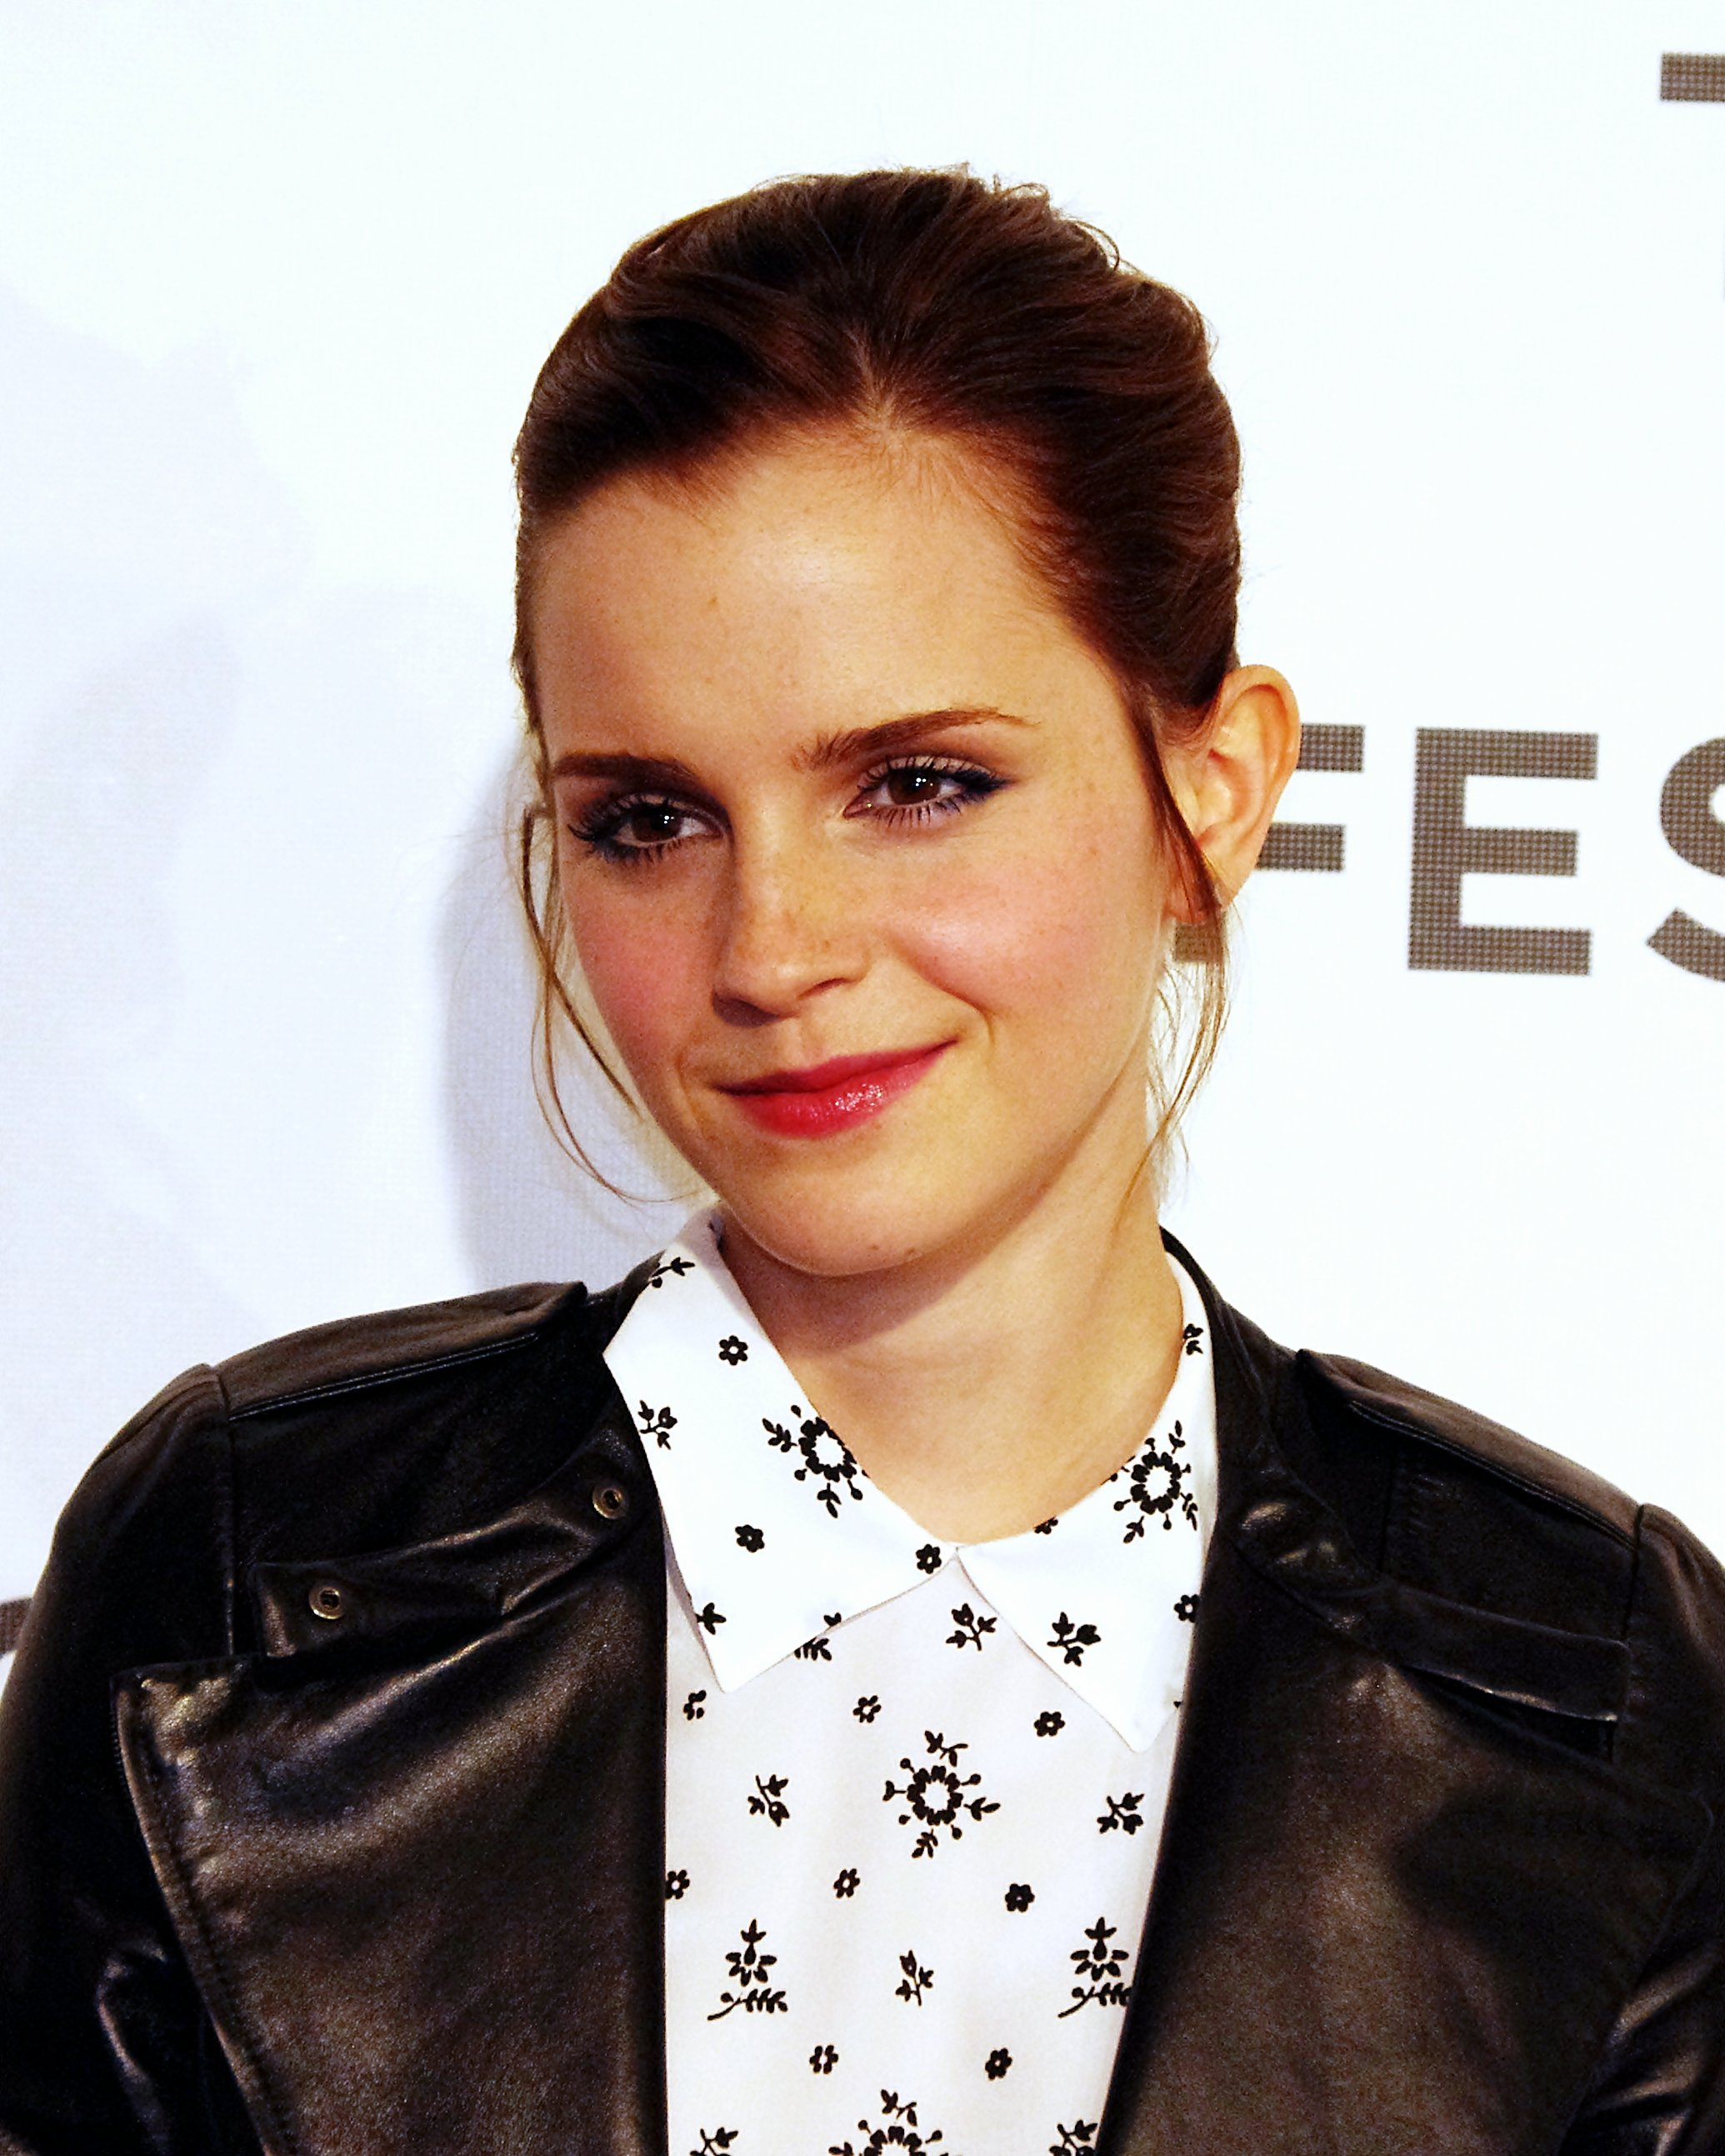 emma watson issues takedown of semi-nude photo | the mary sue